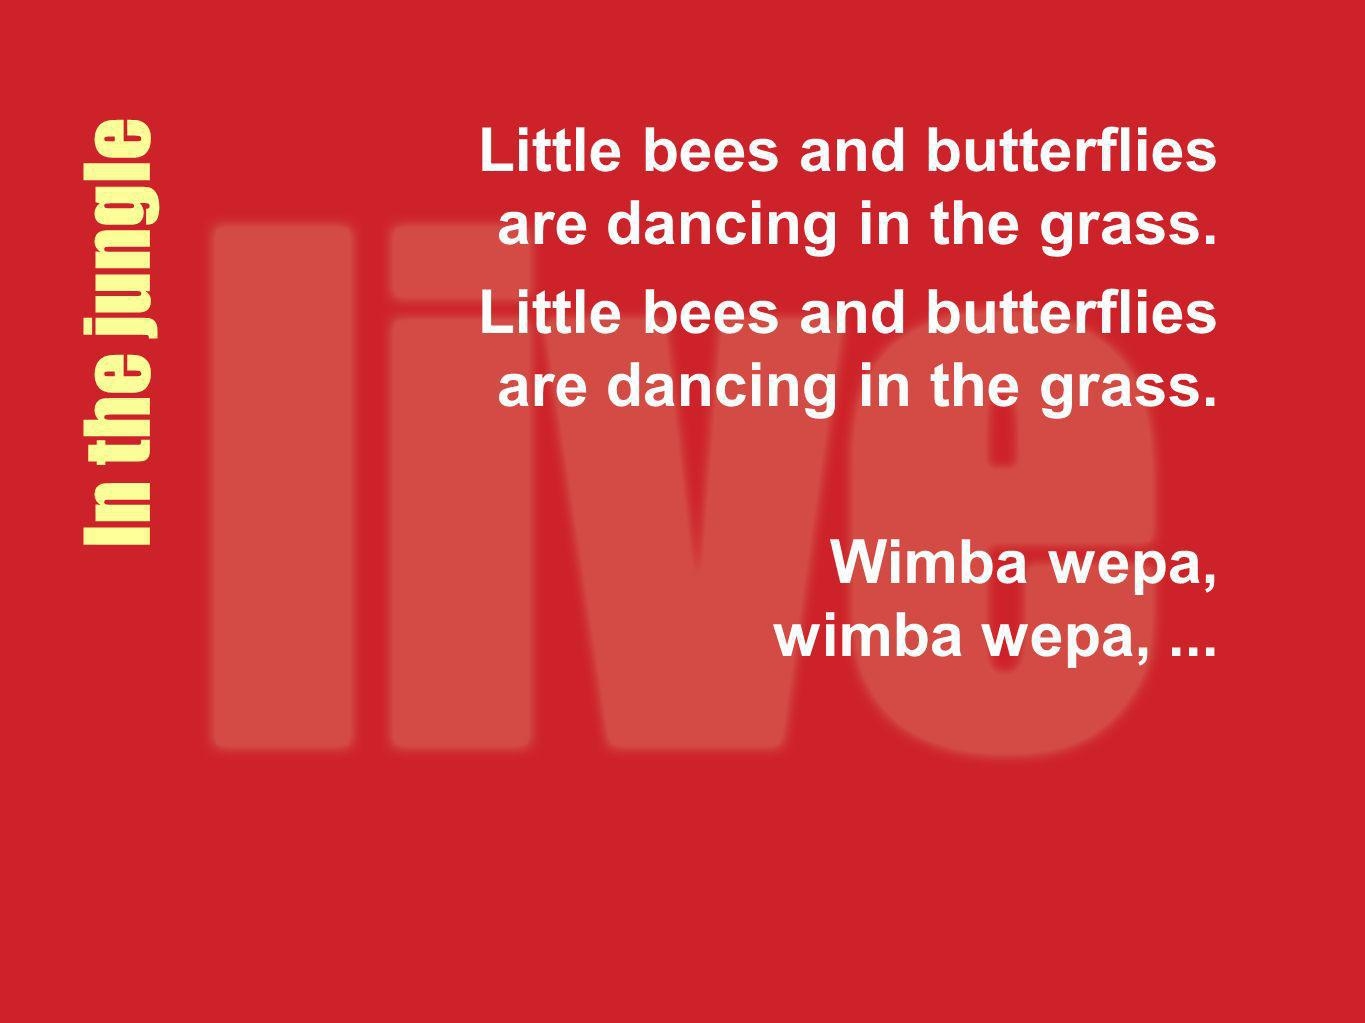 Little bees and butterflies are dancing in the grass. Wimba wepa, wimba wepa,... In the jungle